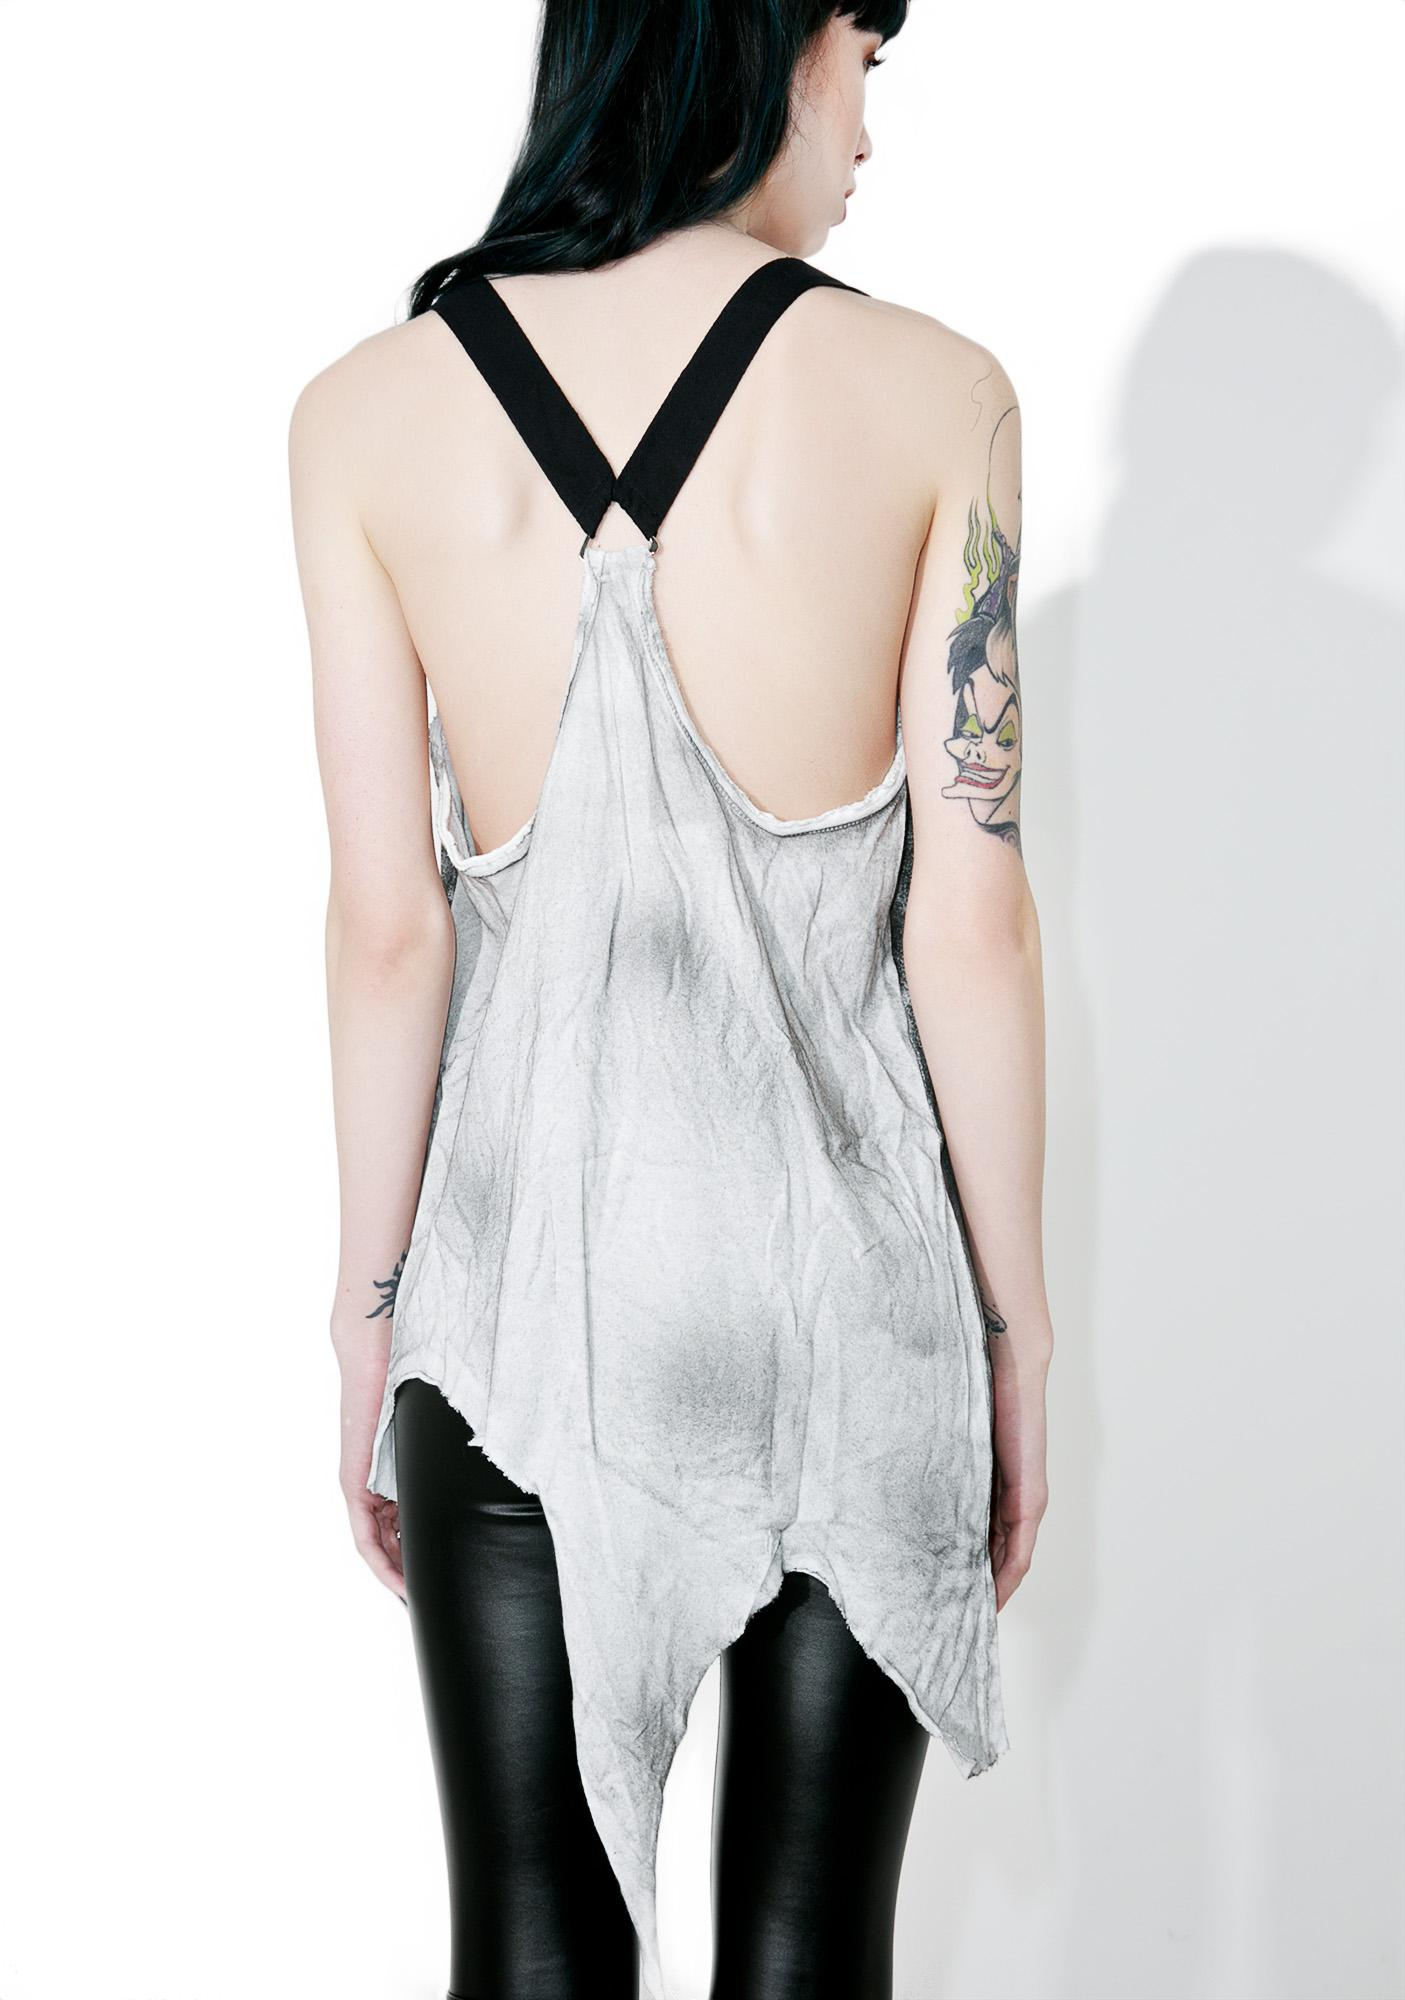 Punk Rave Demon Body Harness Tank